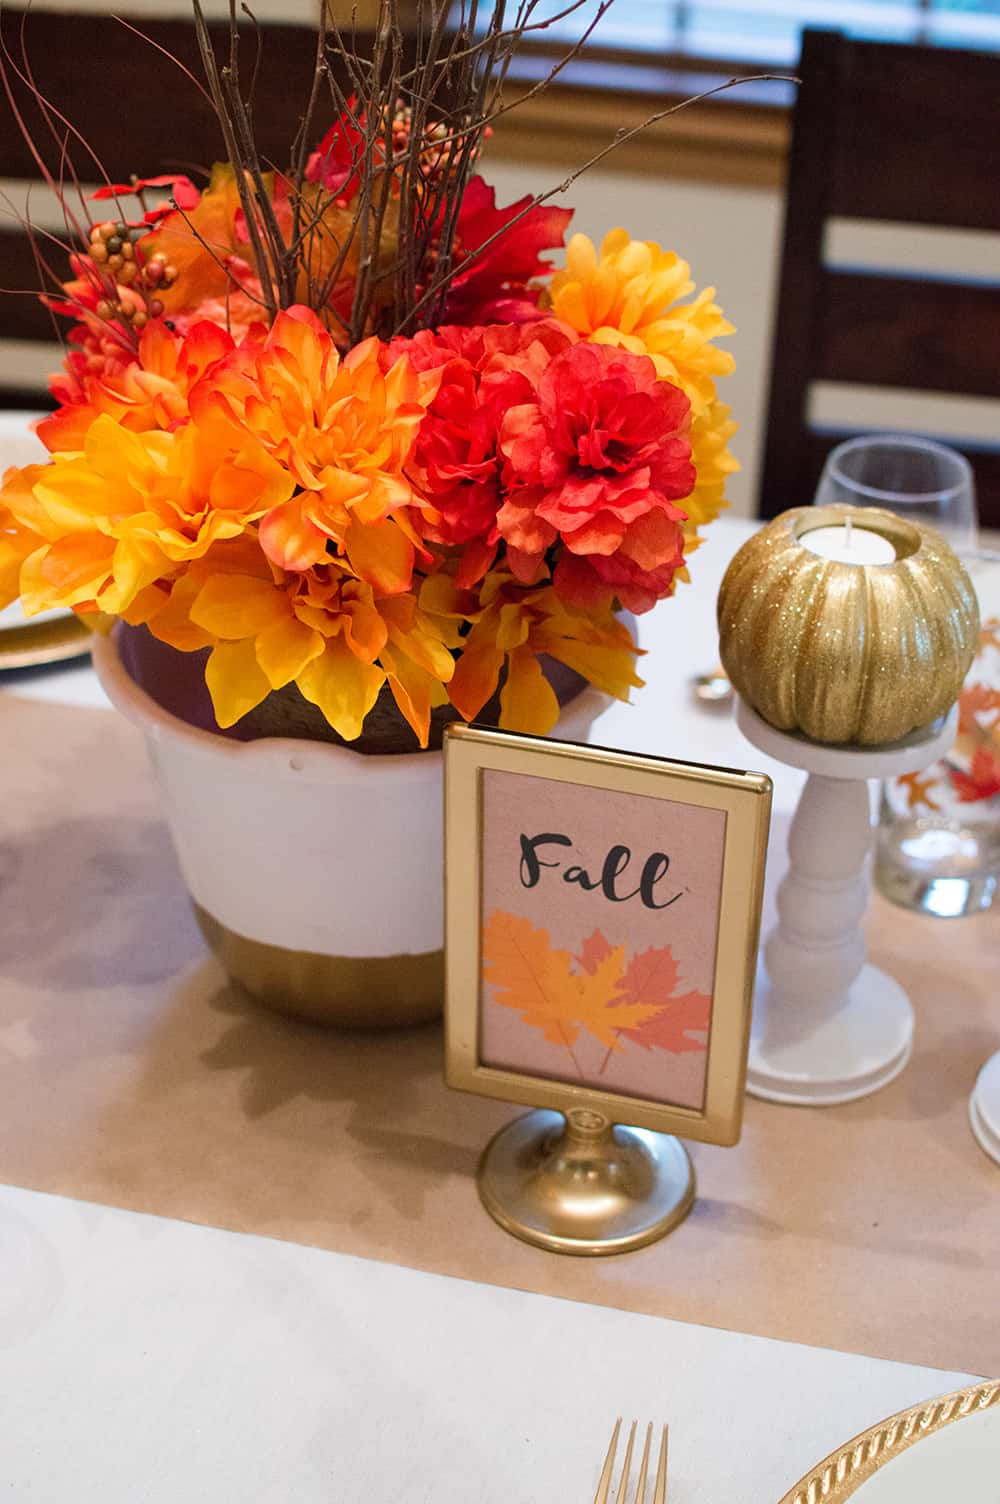 Fall Tablescape Floral Centerpiece and Sign for Thanksgiving Table